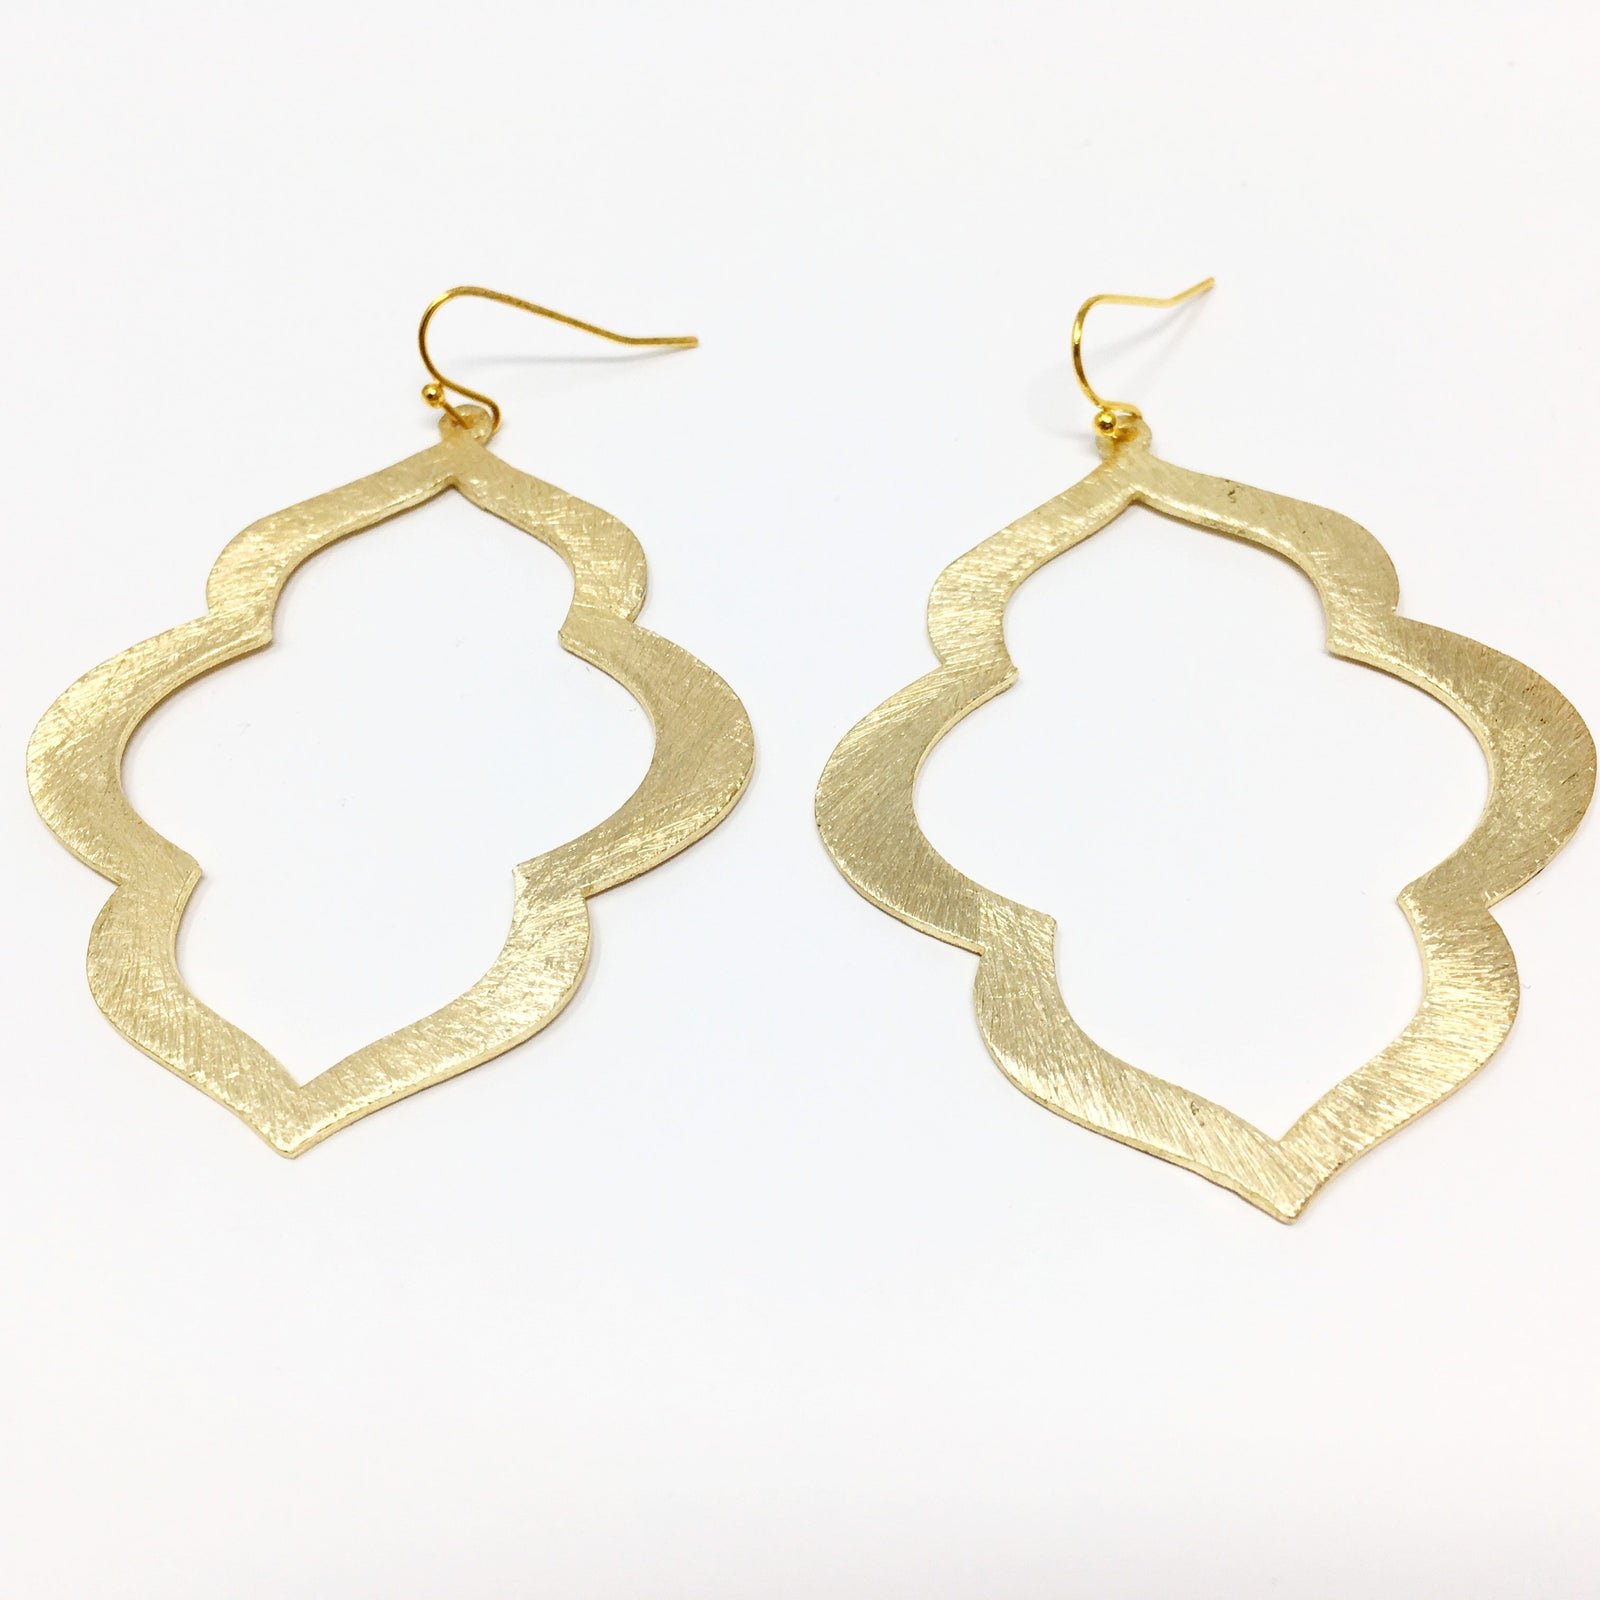 BRUSHED OGEE EARRINGS | GOLD